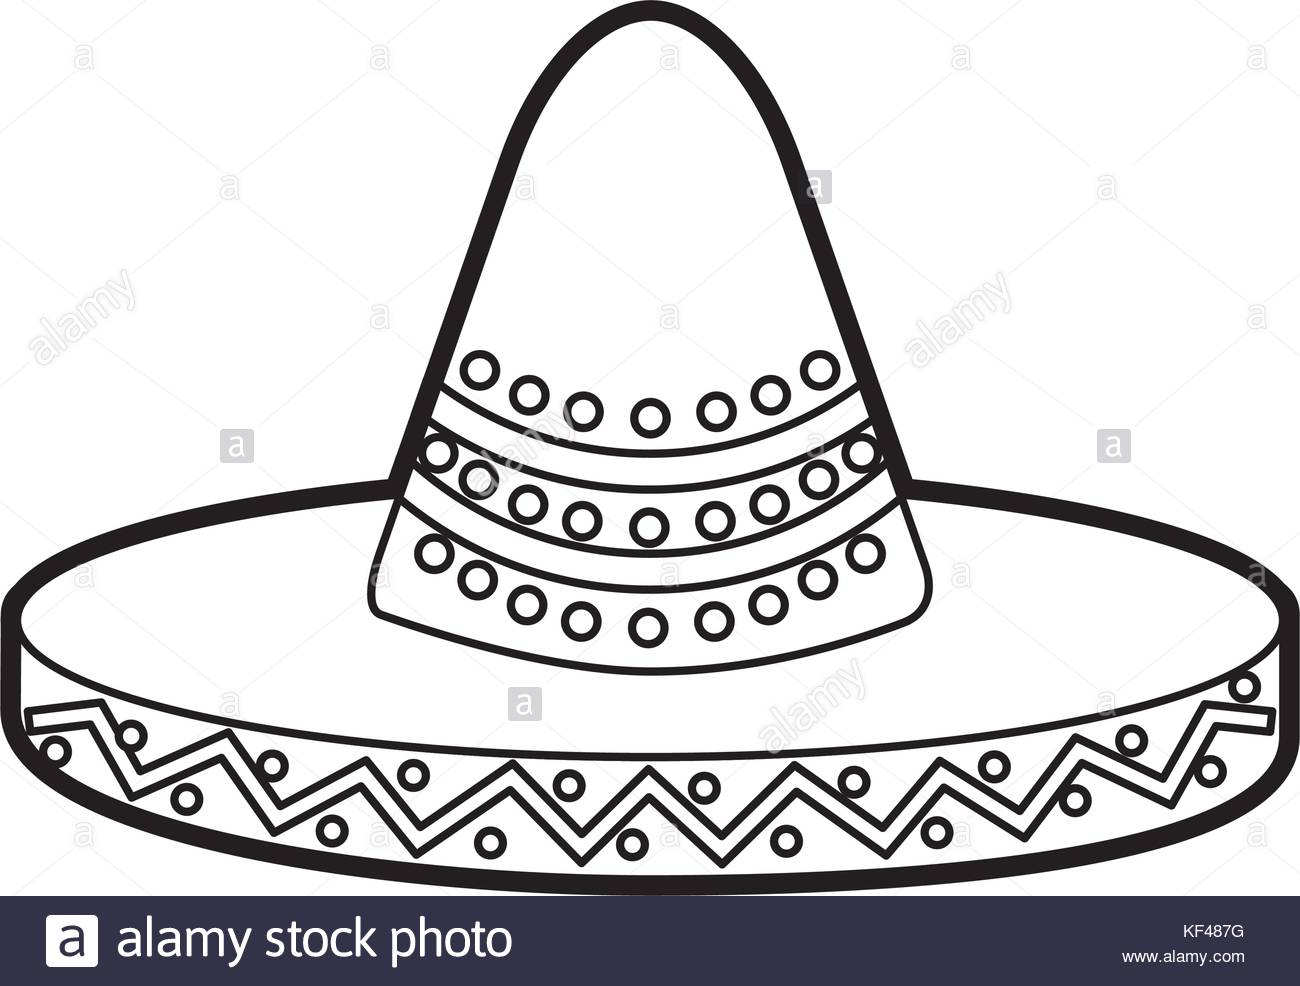 1300x986 Mexican Hat Illustration Stock Photos Amp Mexican Hat Illustration